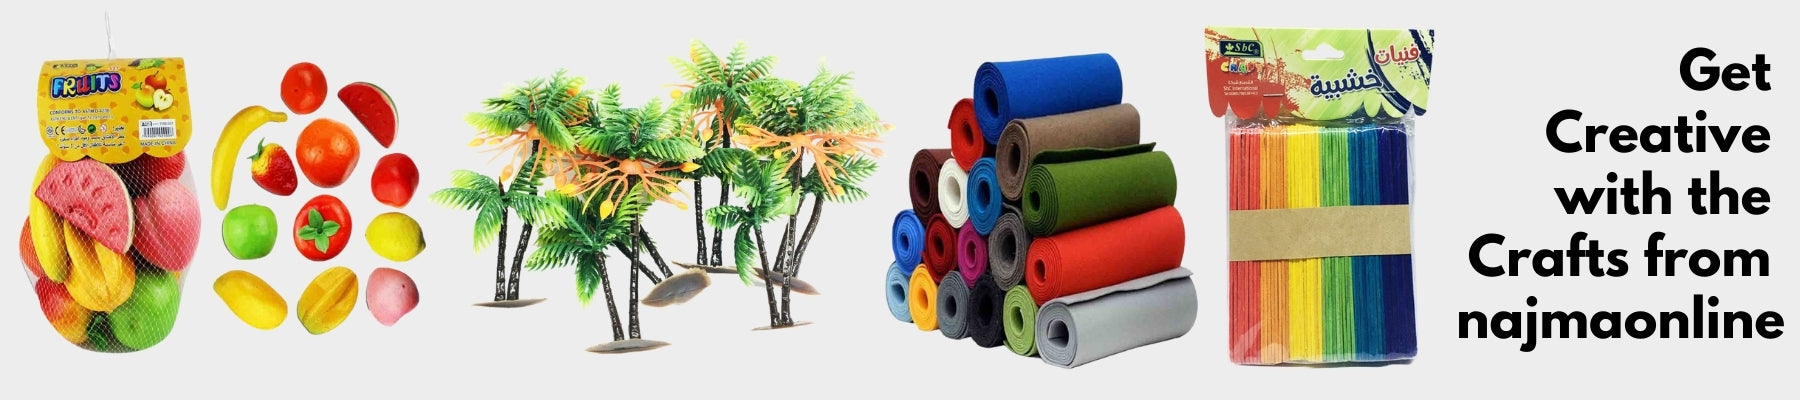 Crafts from najmaonline.com decorative tapes, popsicles, tailoring buds, needle, tailoring crafts and more | Fast Delivery in Abu dhabi, Dubai - UAE